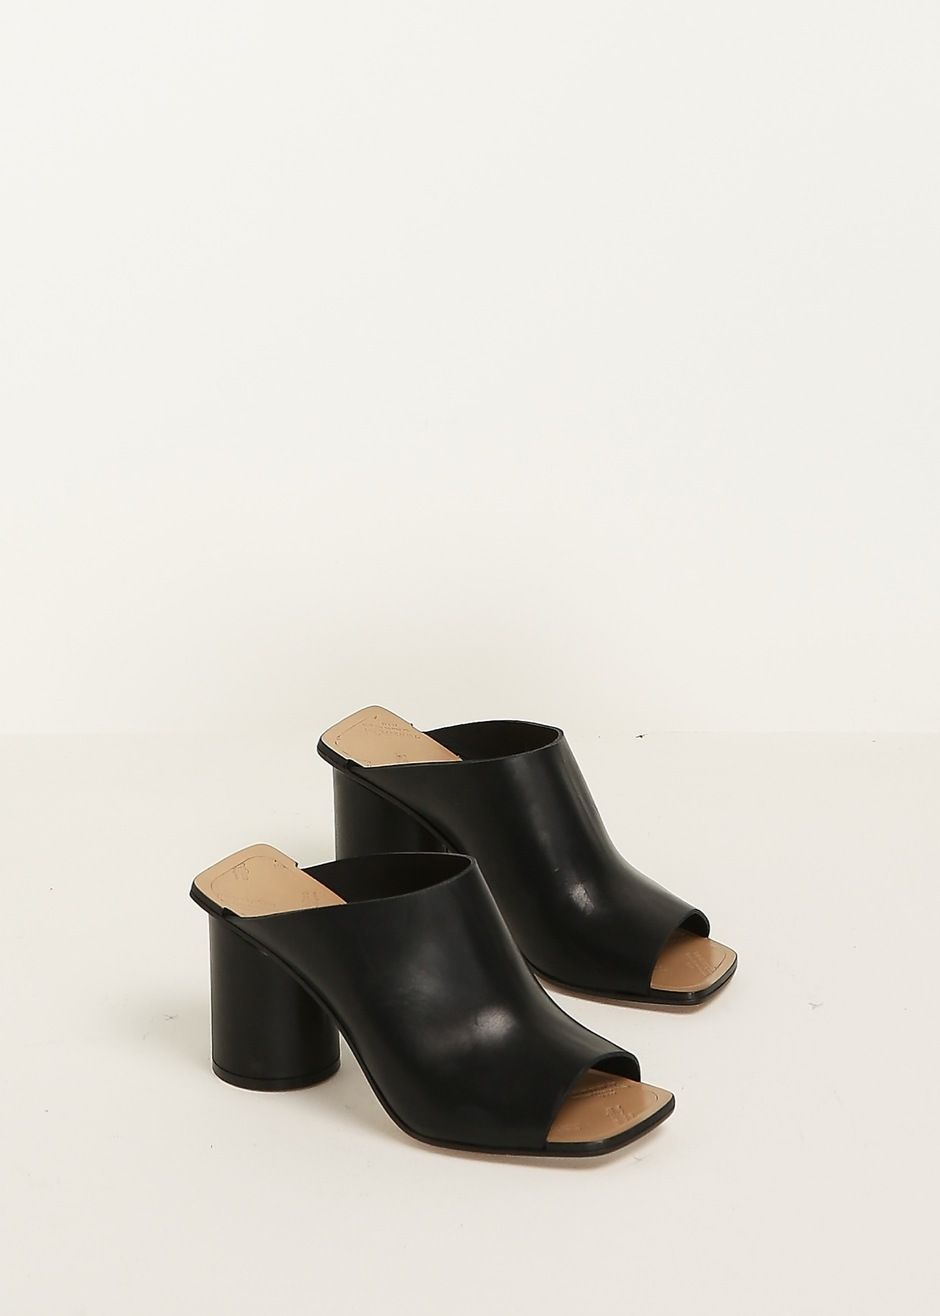 Maison Margiela Leather Square-Toe Mules buy cheap geniue stockist buy cheap with mastercard qm1iVLkmHE